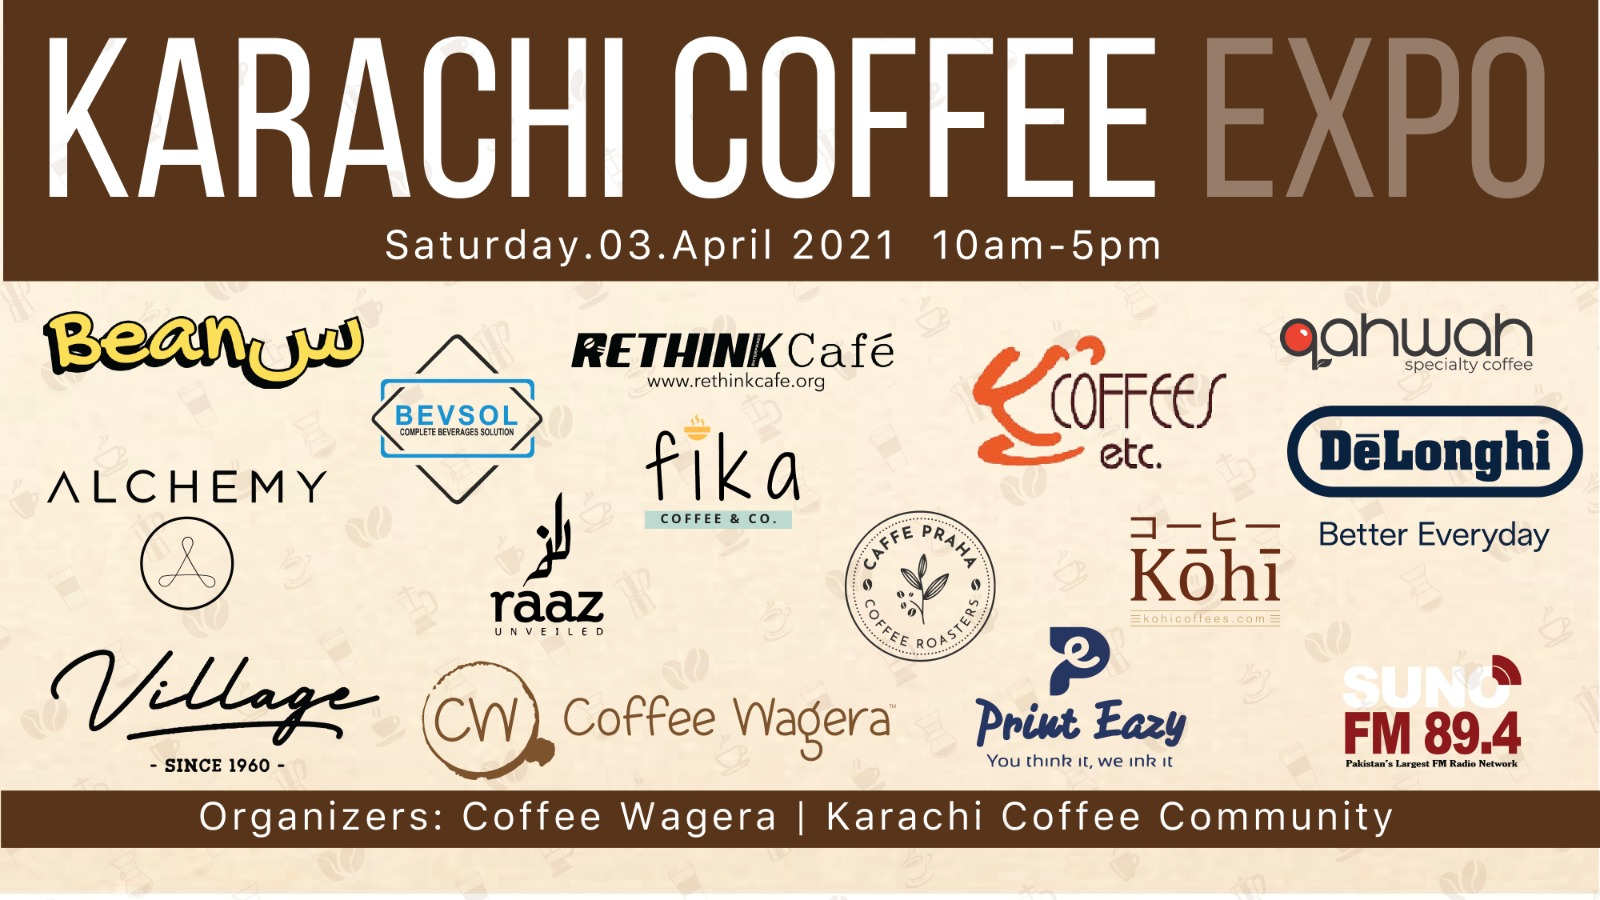 Pakistan's First Coffee Expo by Coffee Wagera will happen on 3rd April 2021!